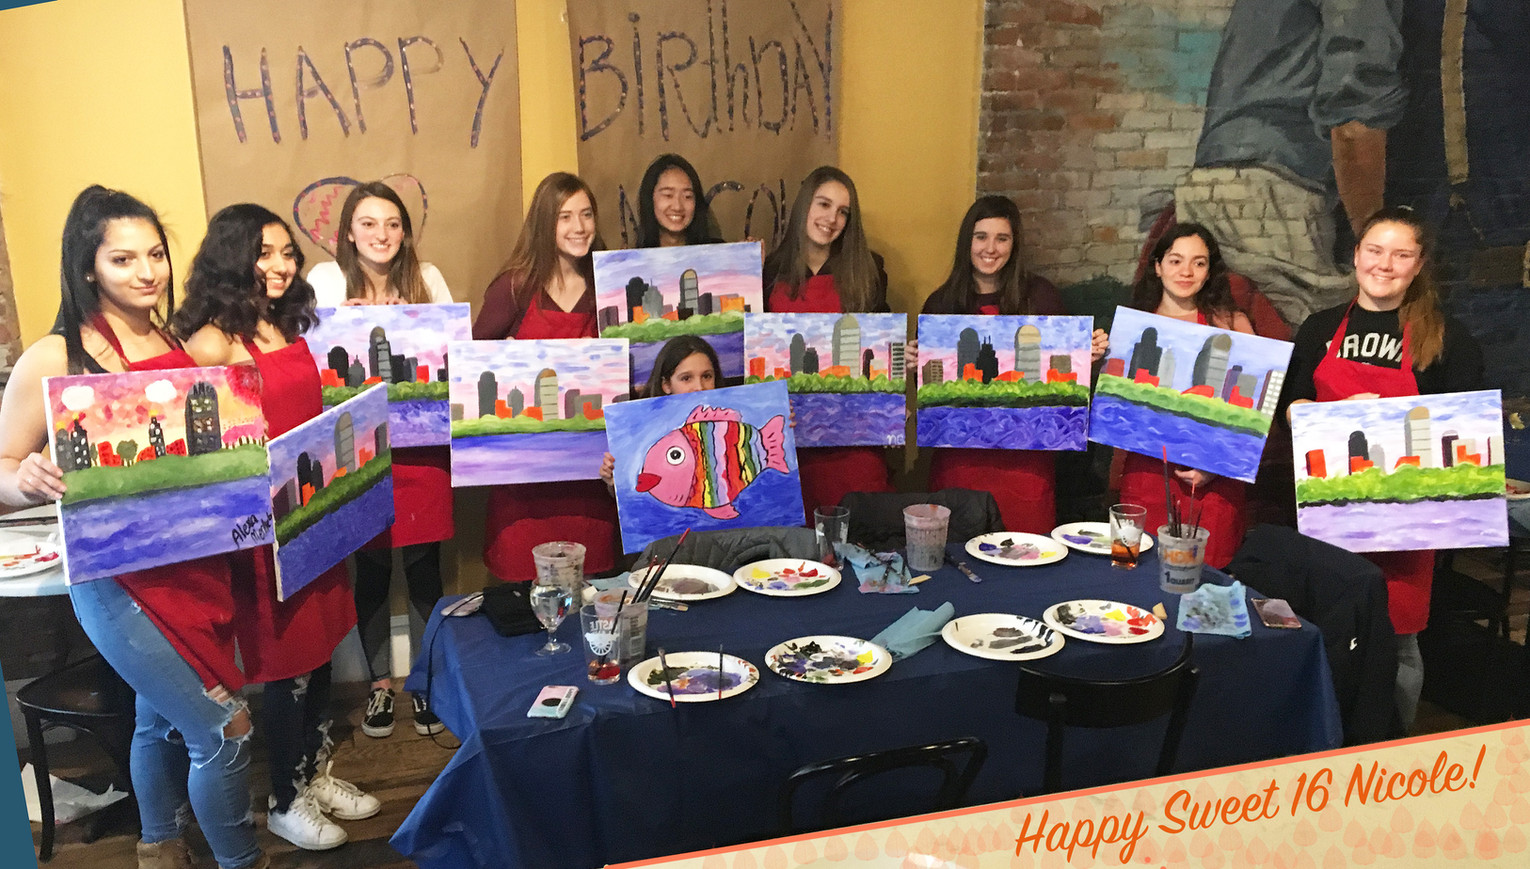 Sweet Sixteen Birthday Paint Party 🎊 🎈